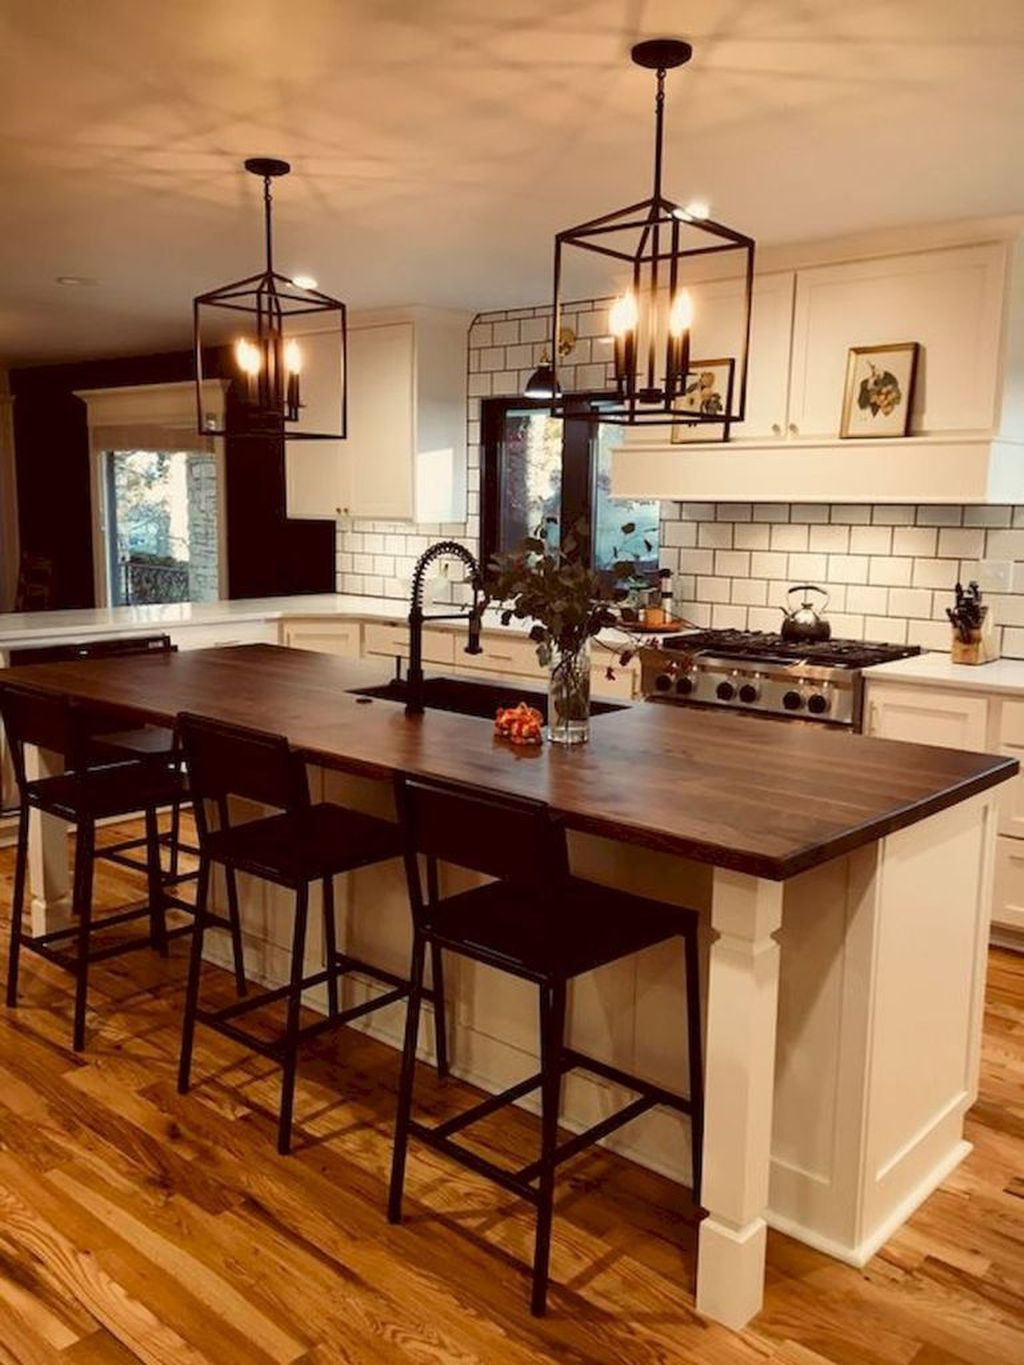 Superb Kitchen Design Ideas That You Can Try 29